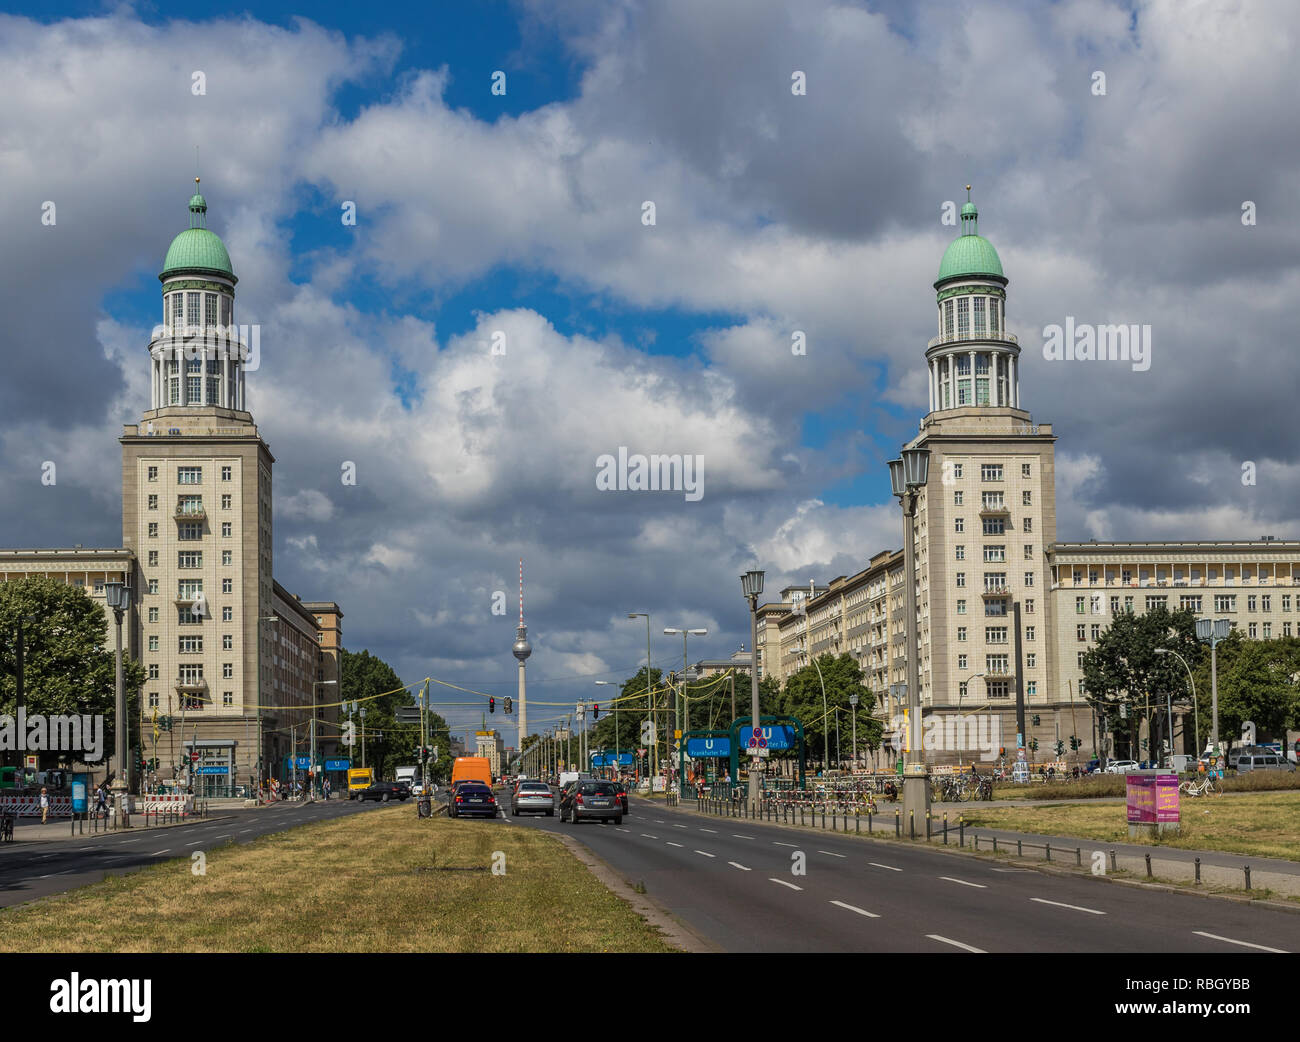 Berlin, Germany - main avenue during of the GDR (East Germany), Karl Marx Allee presents many beautiful buildings. Here its soviet architecture - Stock Image